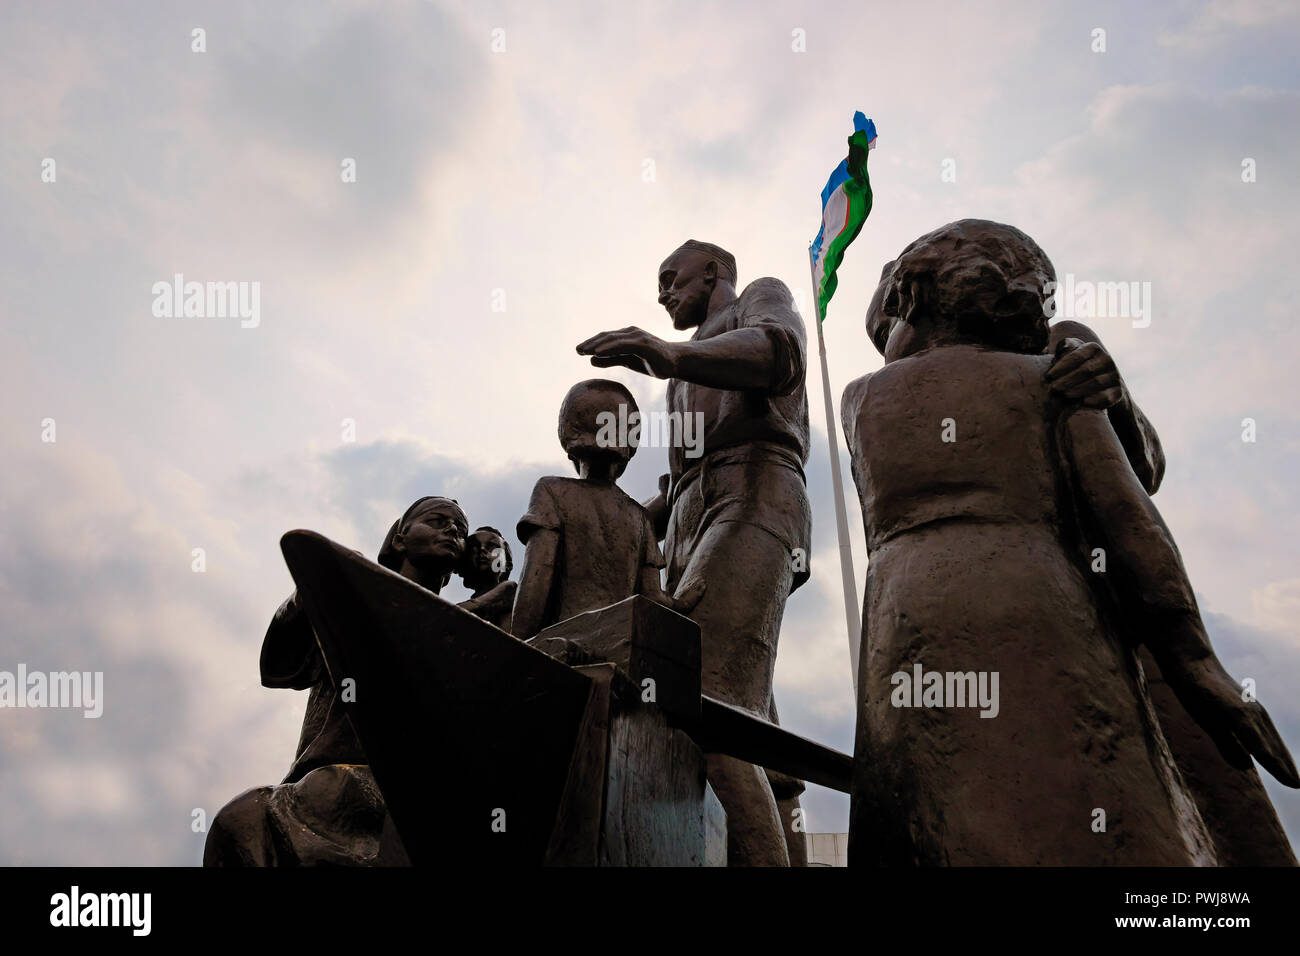 The Uzbek national flag flutters over a Soviet-era monument (created by sculptor Dmitry Ryabichev in 1982) to the blacksmith Shaakhmed Shamakhmudov and his wife Bahri Akramova who adopted 15 children of different nationalities, who lost their parents and were evacuated to Tashkent during WWII placed at the Park of Amity in Tashkent, capital of Uzbekistan. During Second World War more than one million evacuees, including more than 200,000 children who had lost their parents, were moved to Uzbekistan. Every day, between 200 and 400 orphans arrived at Tashkent railway station. - Stock Image